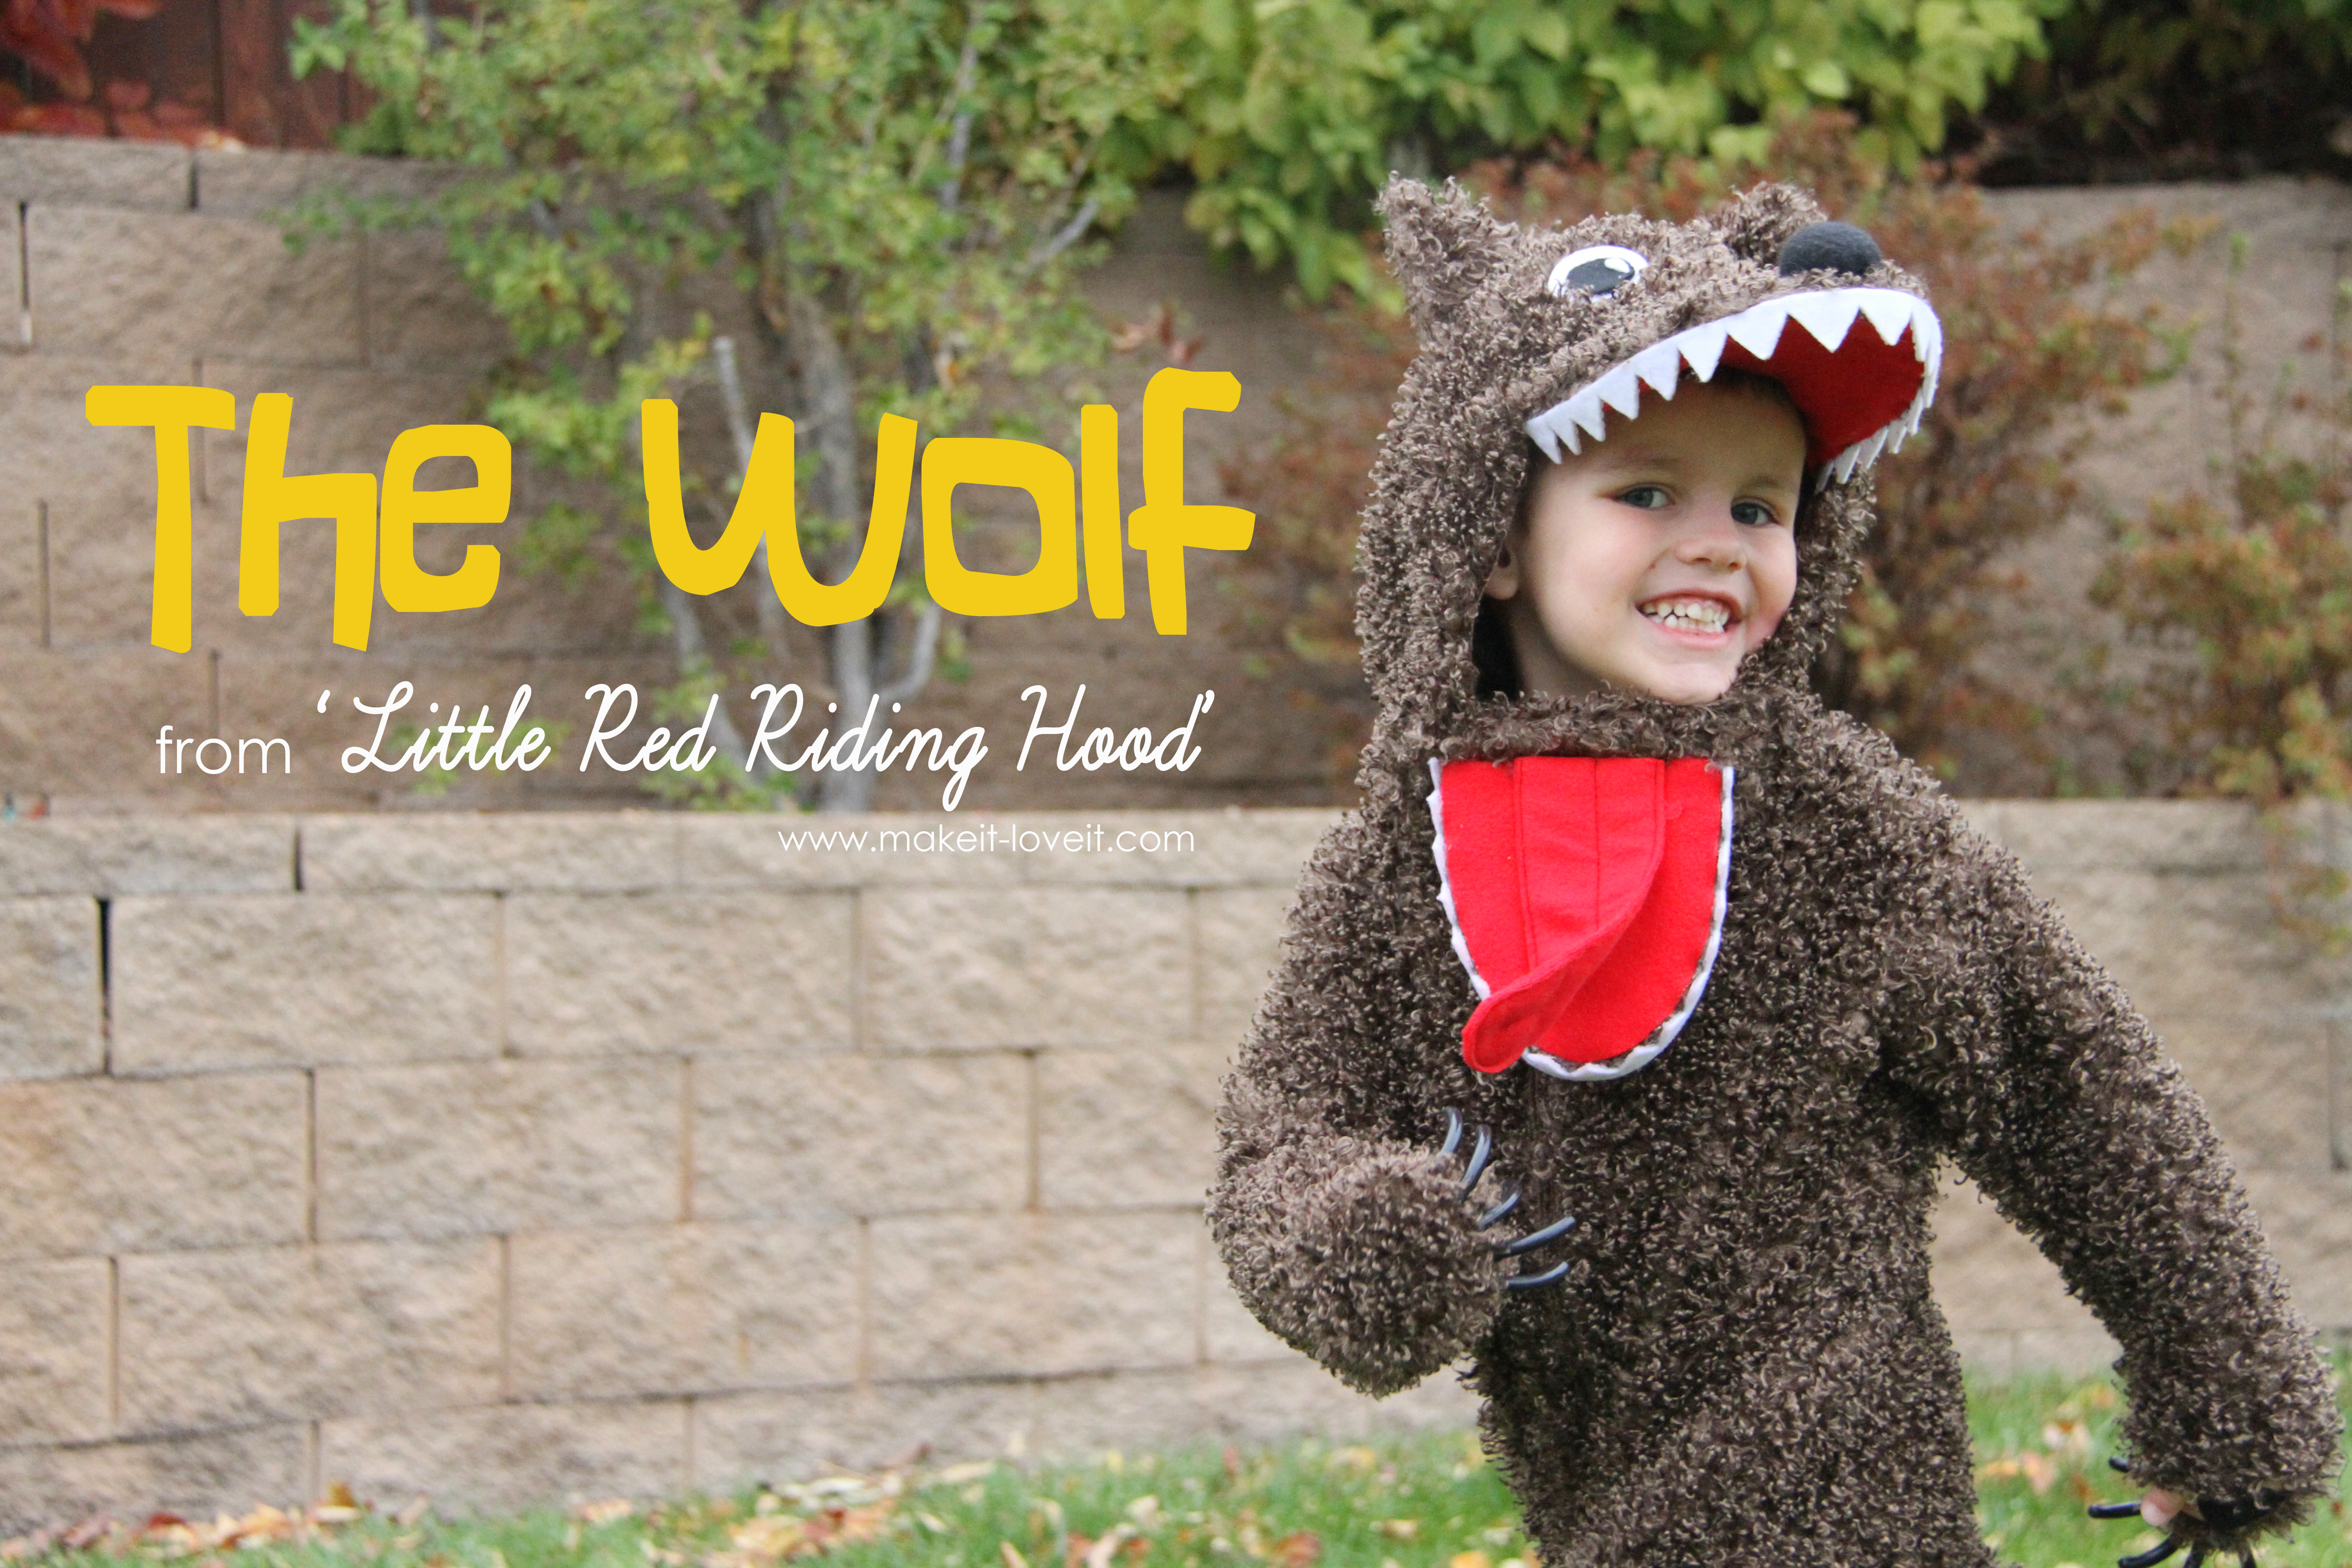 Halloween costumes 2012: the wolf (from 'little red riding hood')